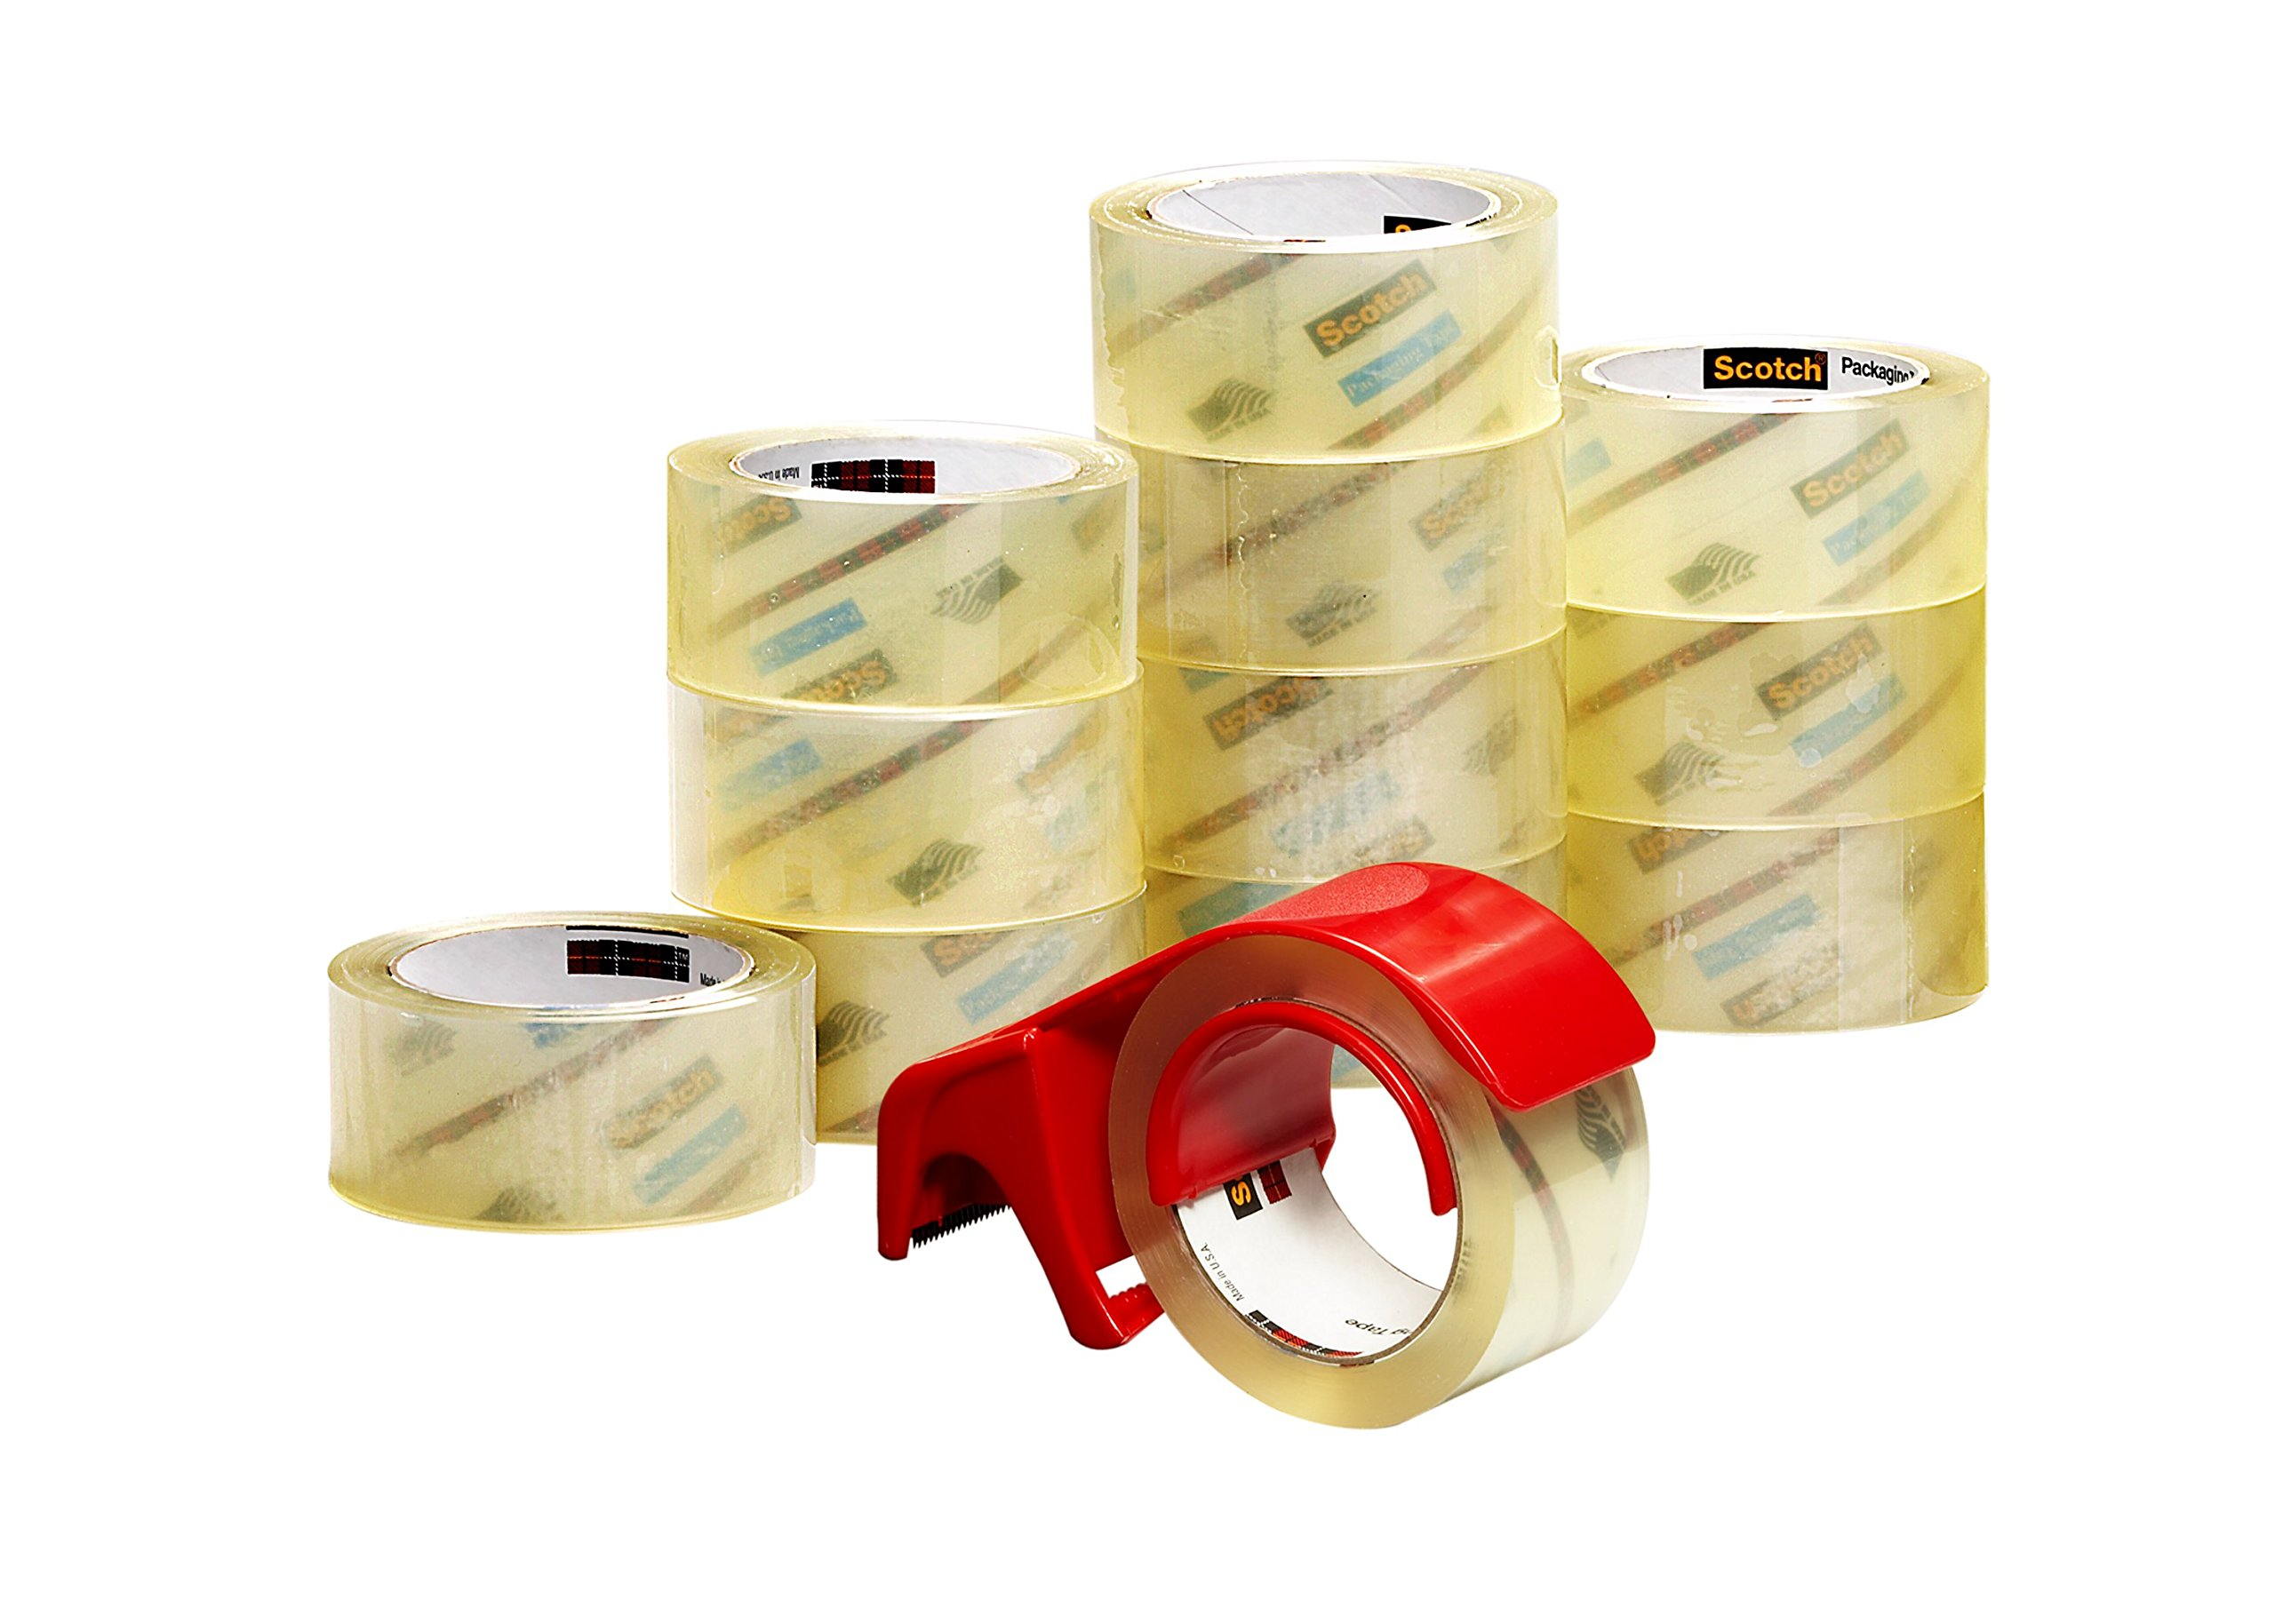 Scotch Commercial Grade Shipping Packaging Tape, 1.88 in x 54.6 yd, 12 Rolls with Refillable Dispenser (3750-12-DP3)